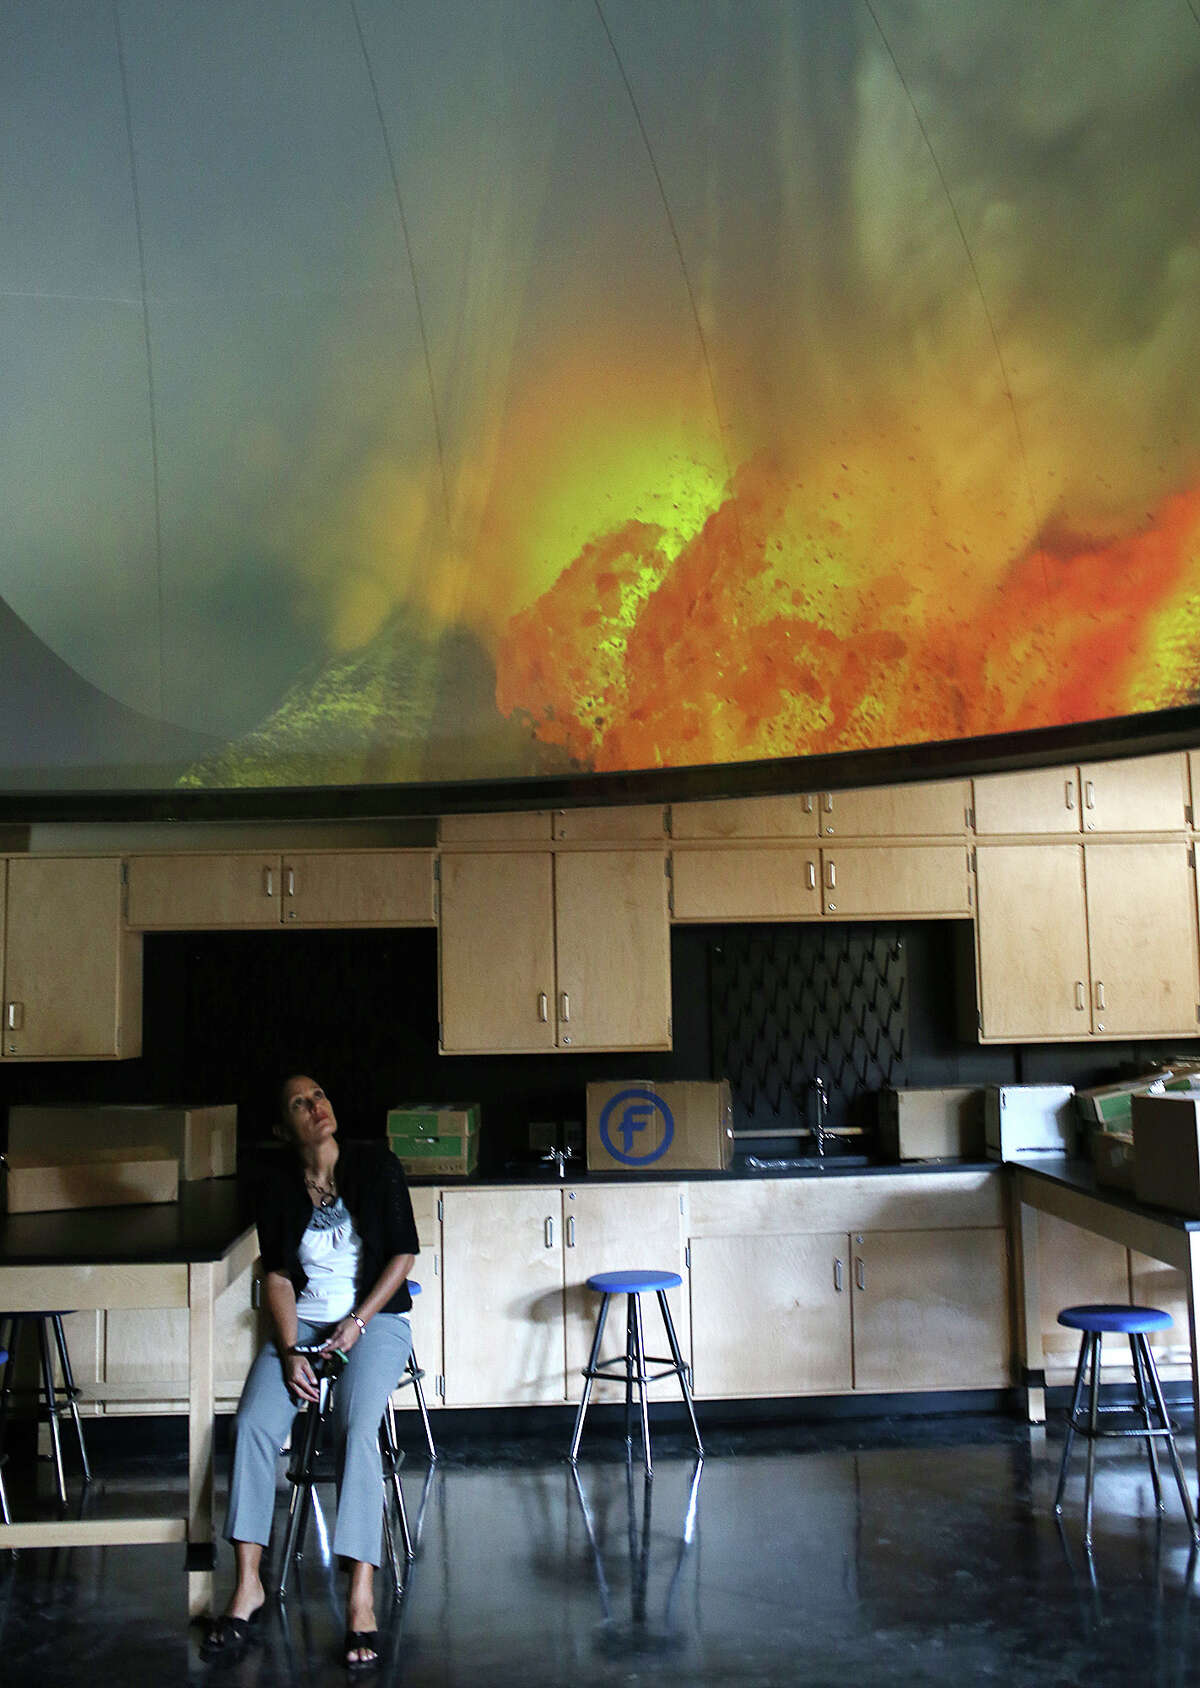 South San Antonio Independent School District director of child nutrition Jenny Arredondo checks out a volcanism video on a planetarium at the new South San High School, Monday, Aug. 19, 2013. The school is part of a $58 million bond and will open with the coming school year.